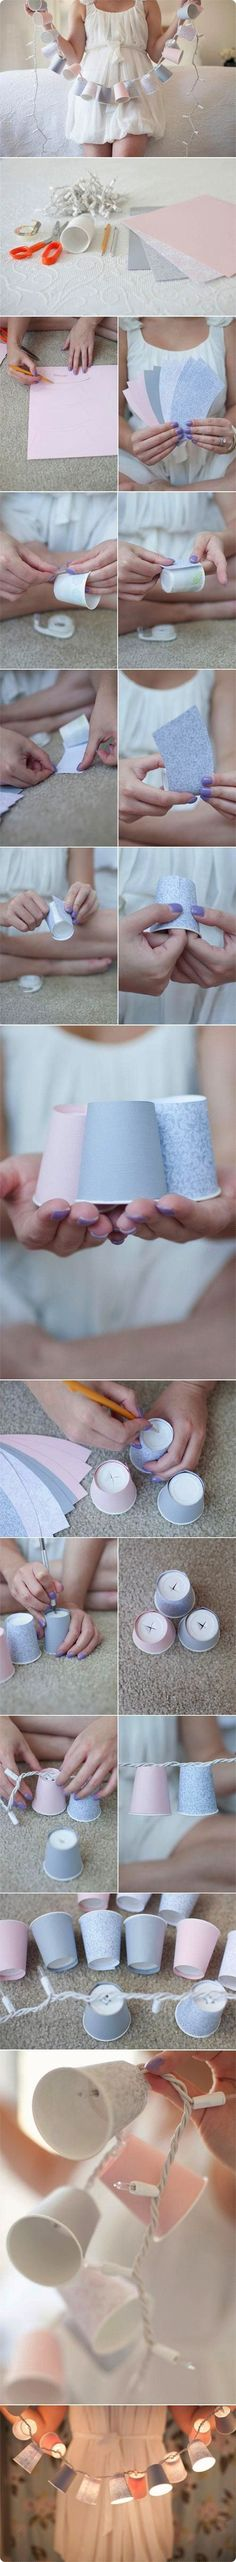 "This is a great, chic and cute reusable DIY. You can use it for showers, nursery, wedding rehearsal, birthdays, dinners, etc.  I just love how easy and cute it looks! This is defently a ""must"" for you try at home and customize is as much as you want. I cannot wait to make mine!"